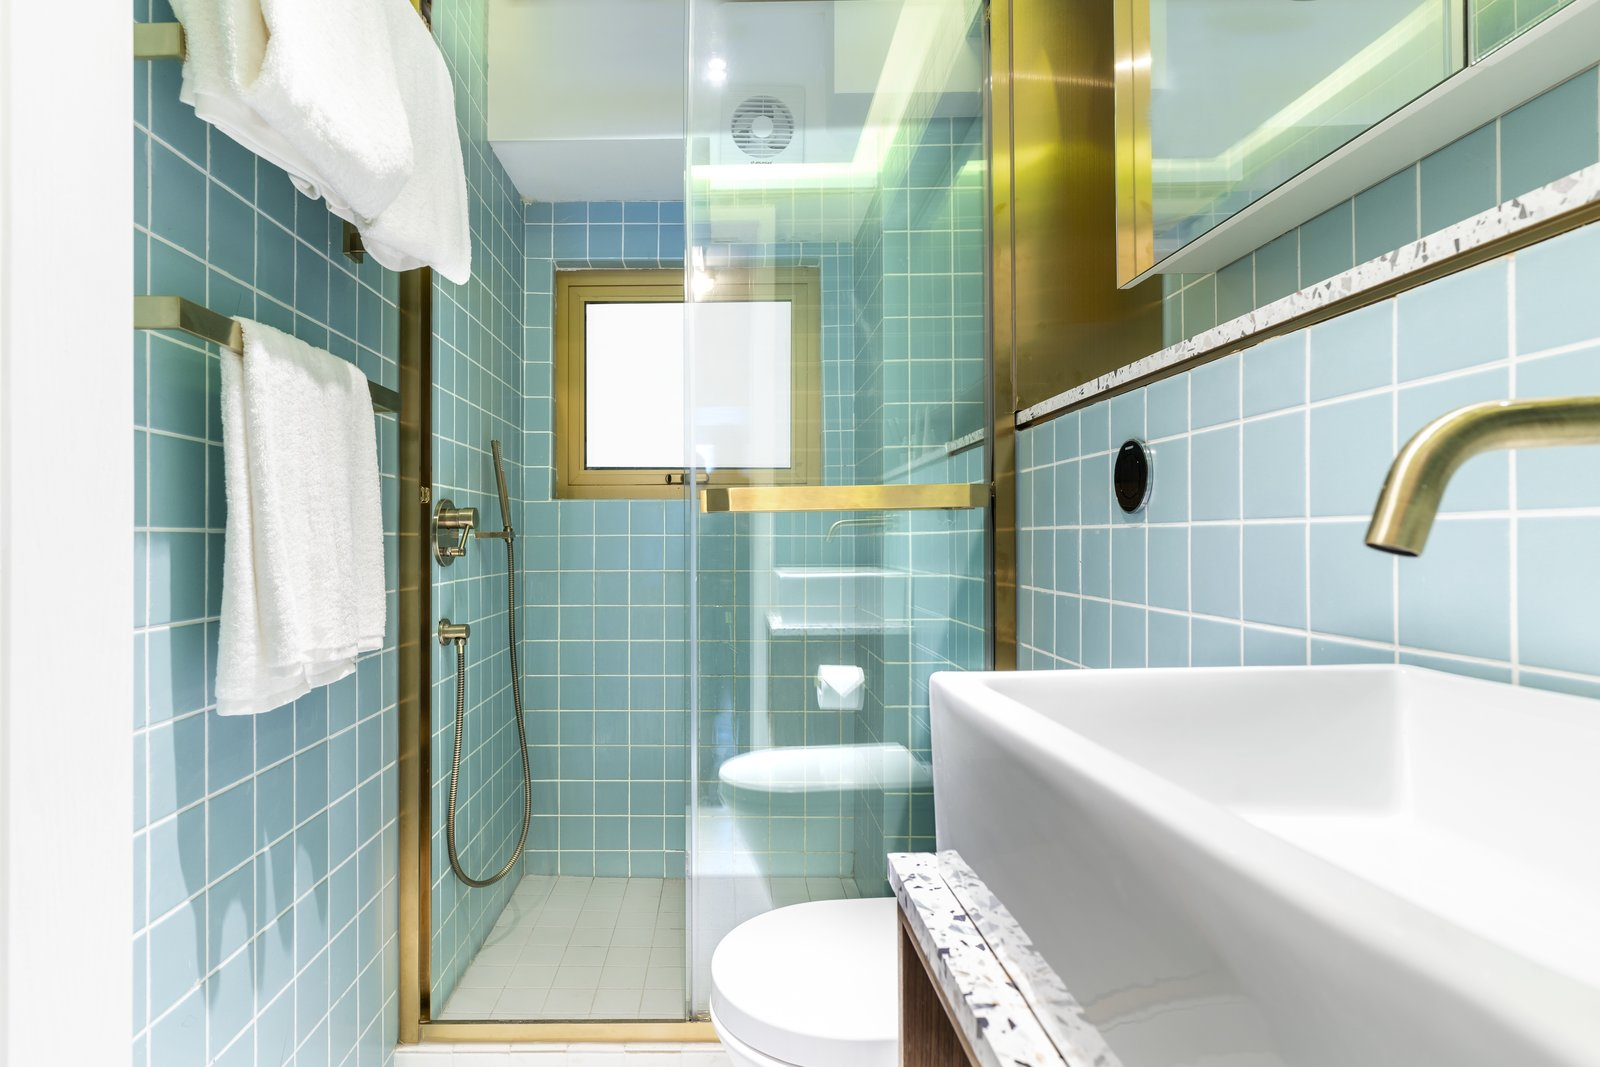 The Nate bathroom with blue tile